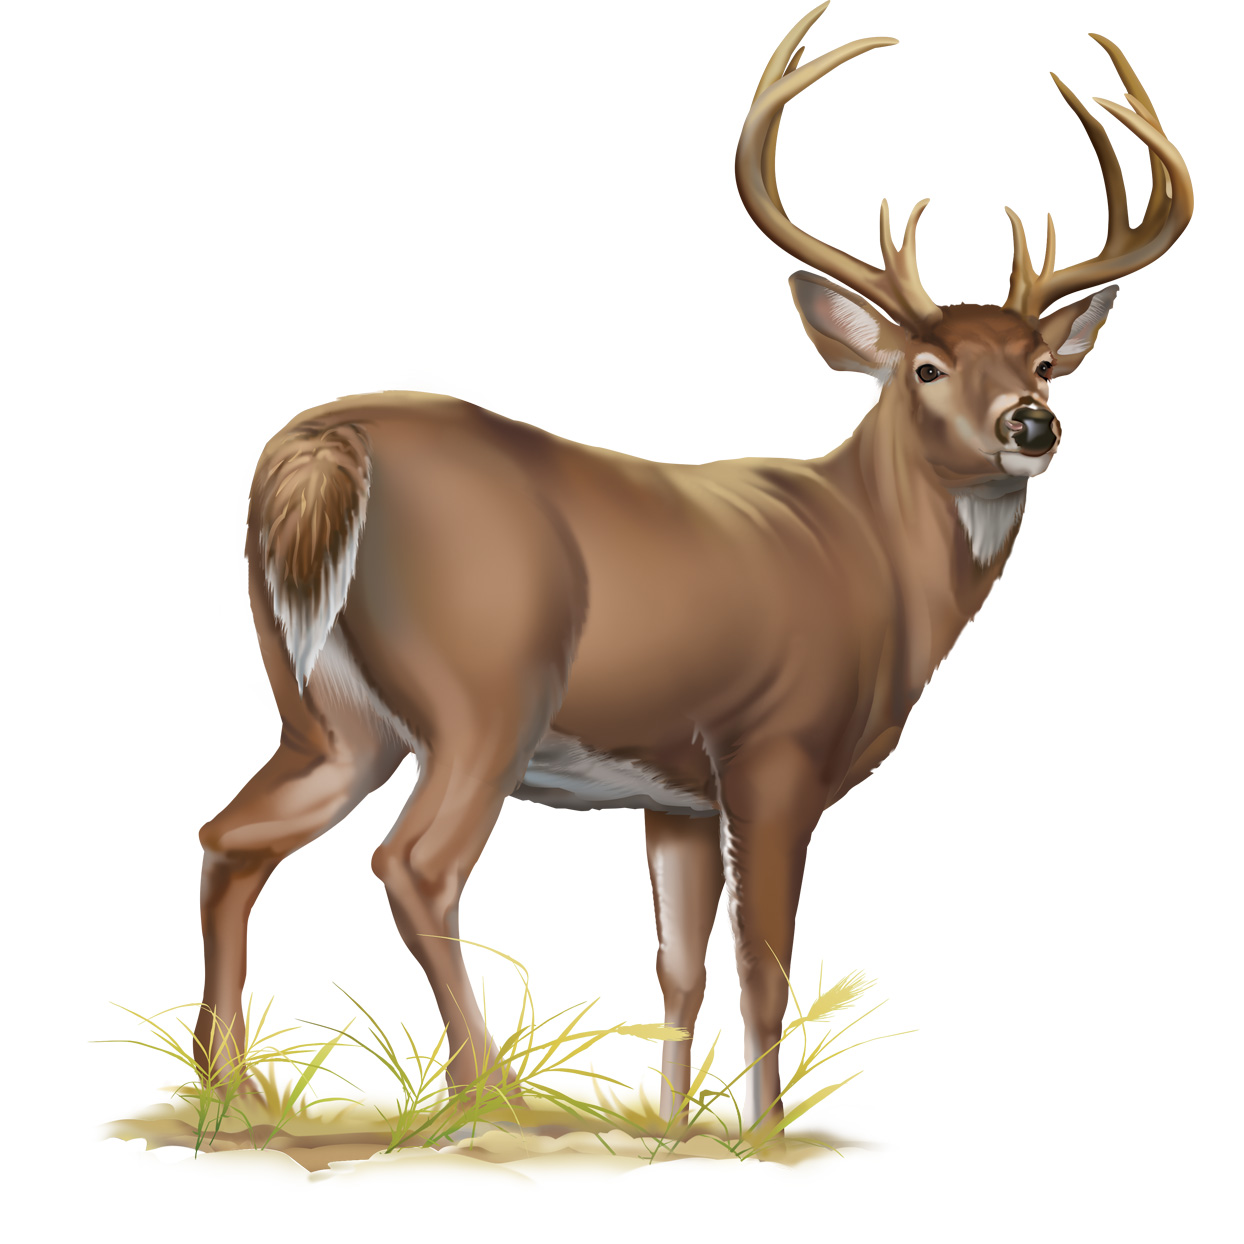 whitetail deer.jpg